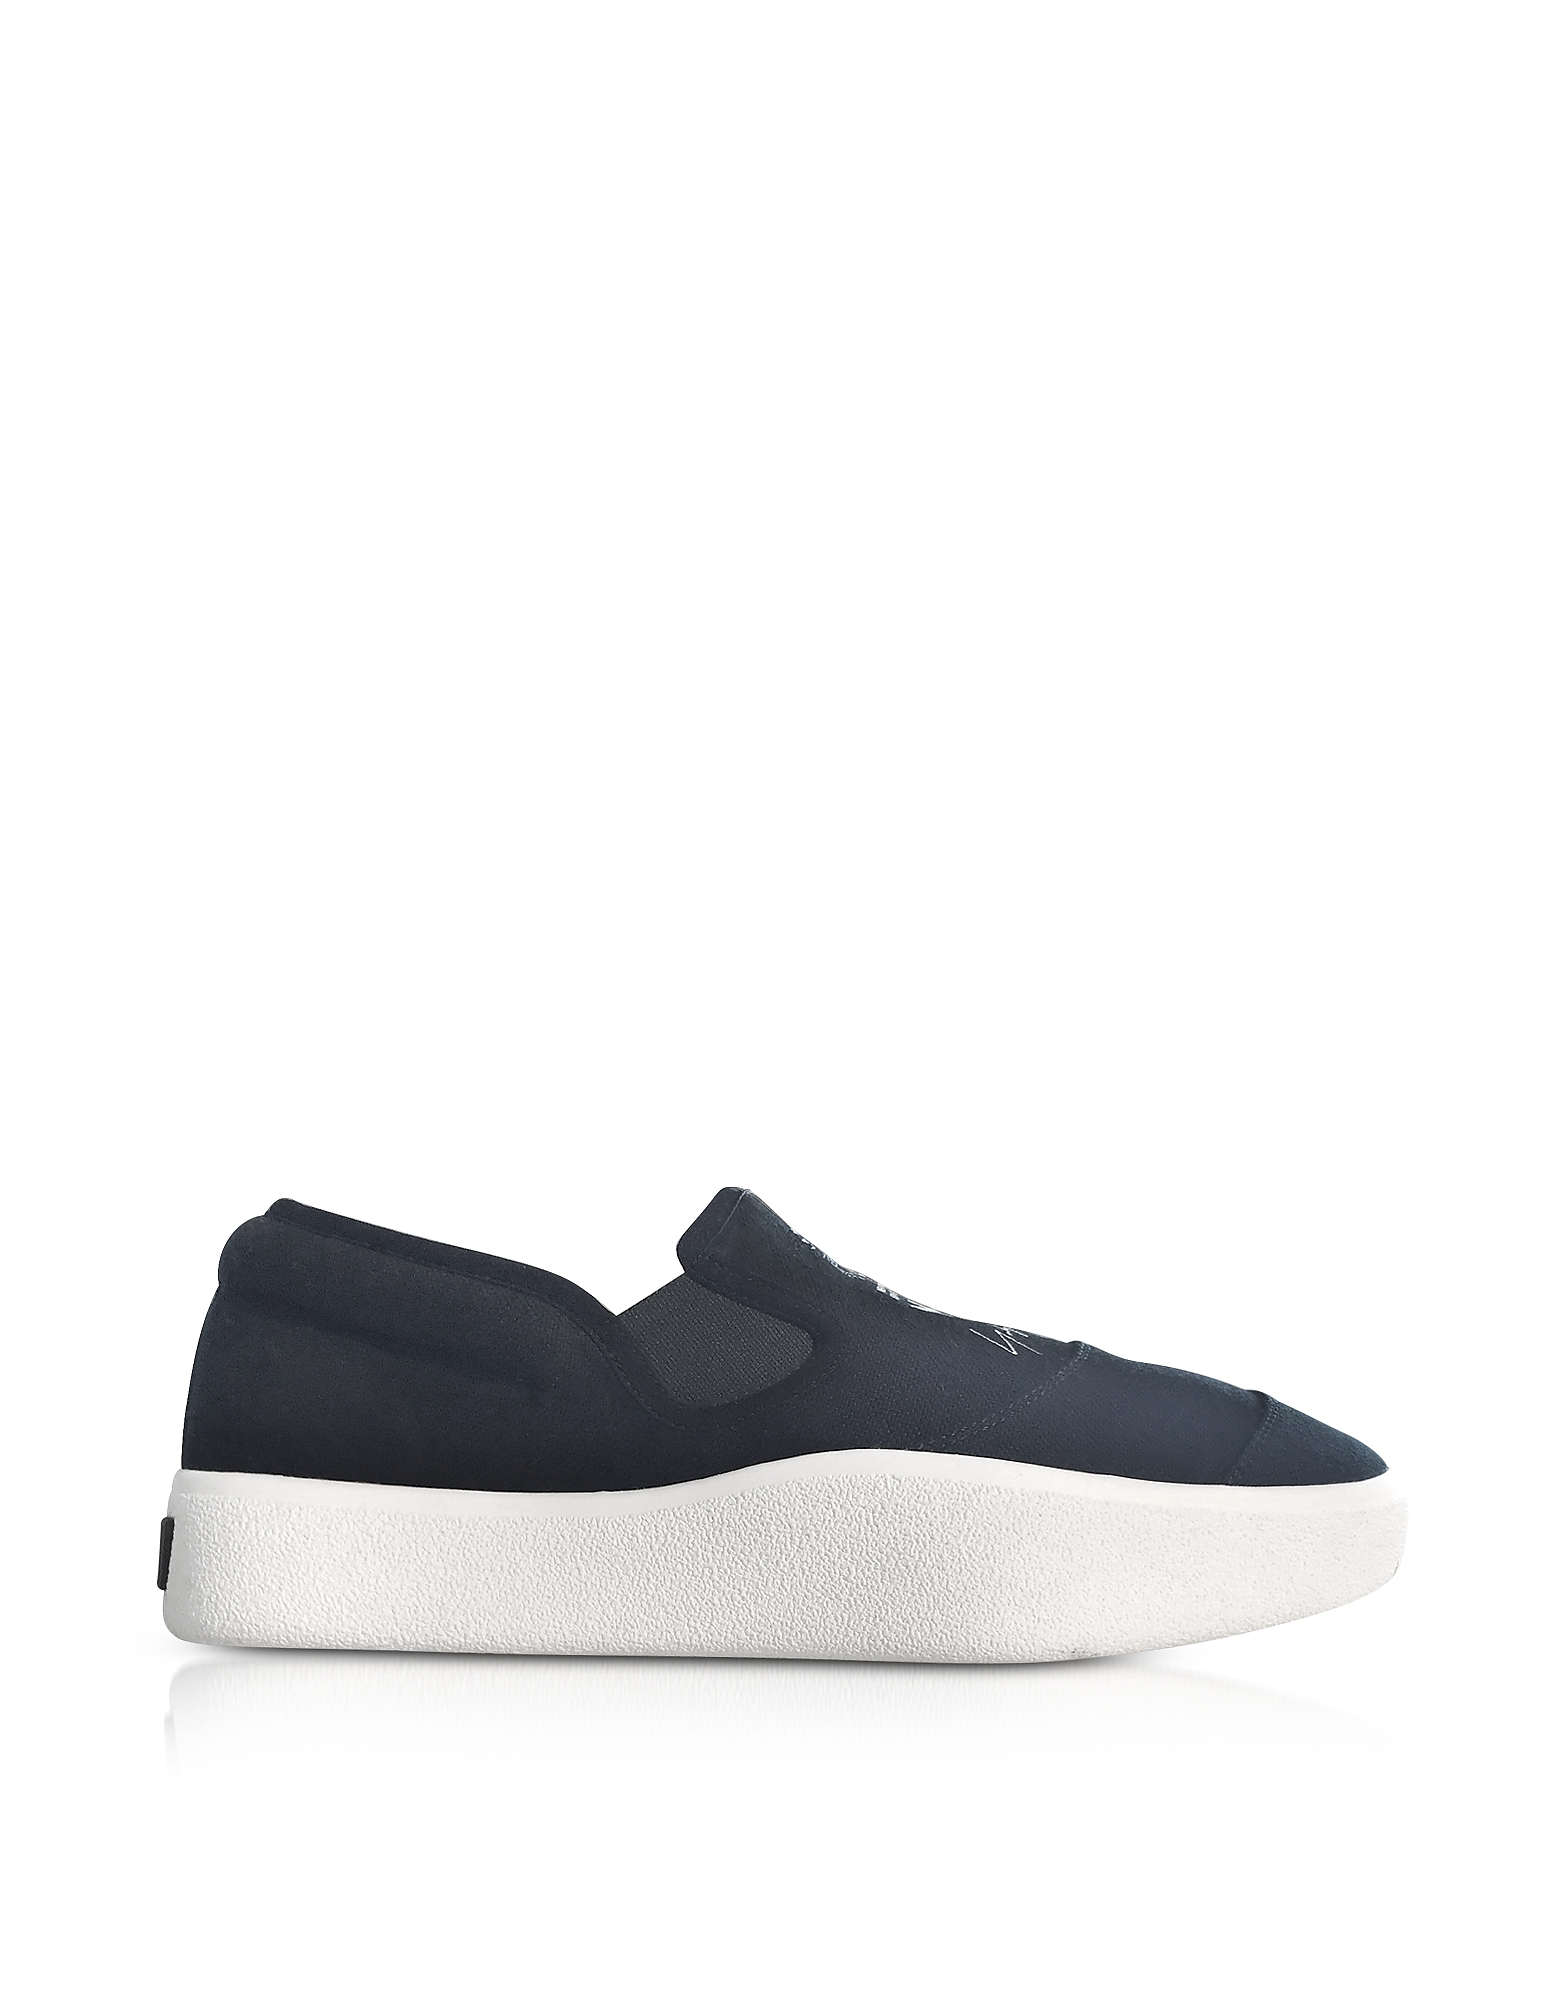 Y-3 Shoes, Black and White Y-3 Tangutsu Slip-on Sneakers